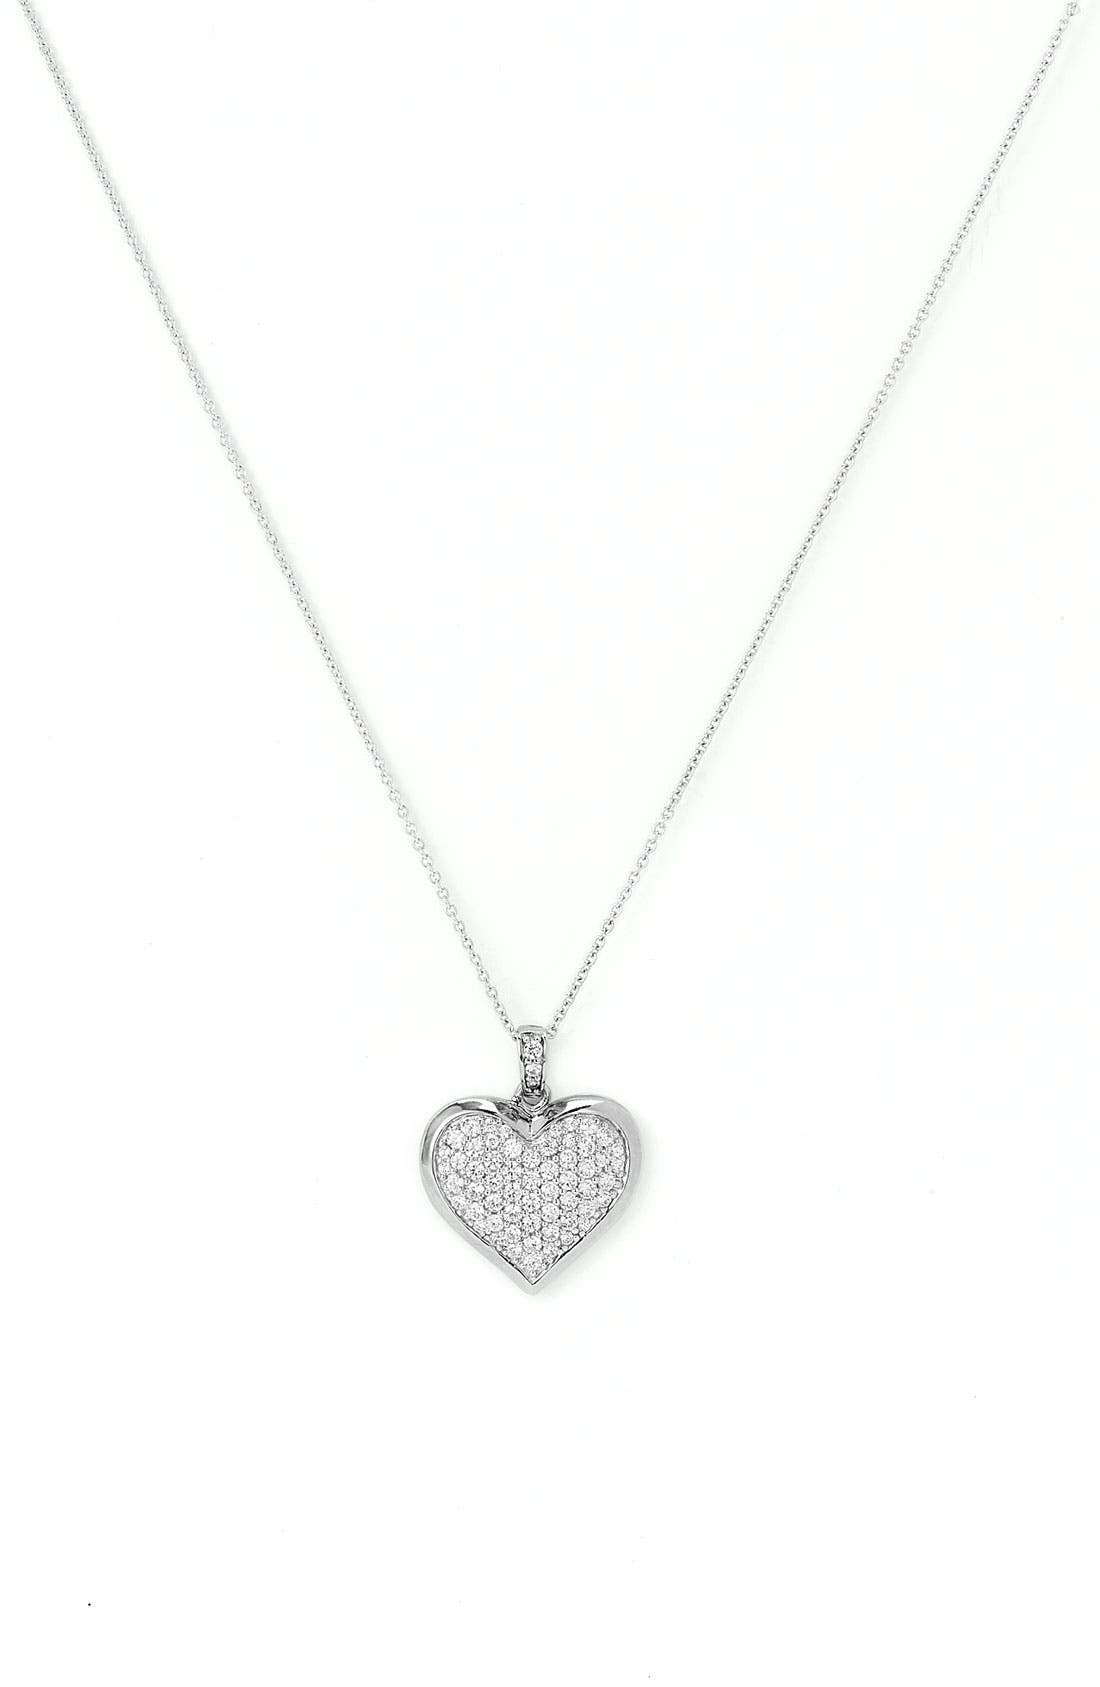 Main Image - Nordstrom Cubic Zirconia Locket Necklace